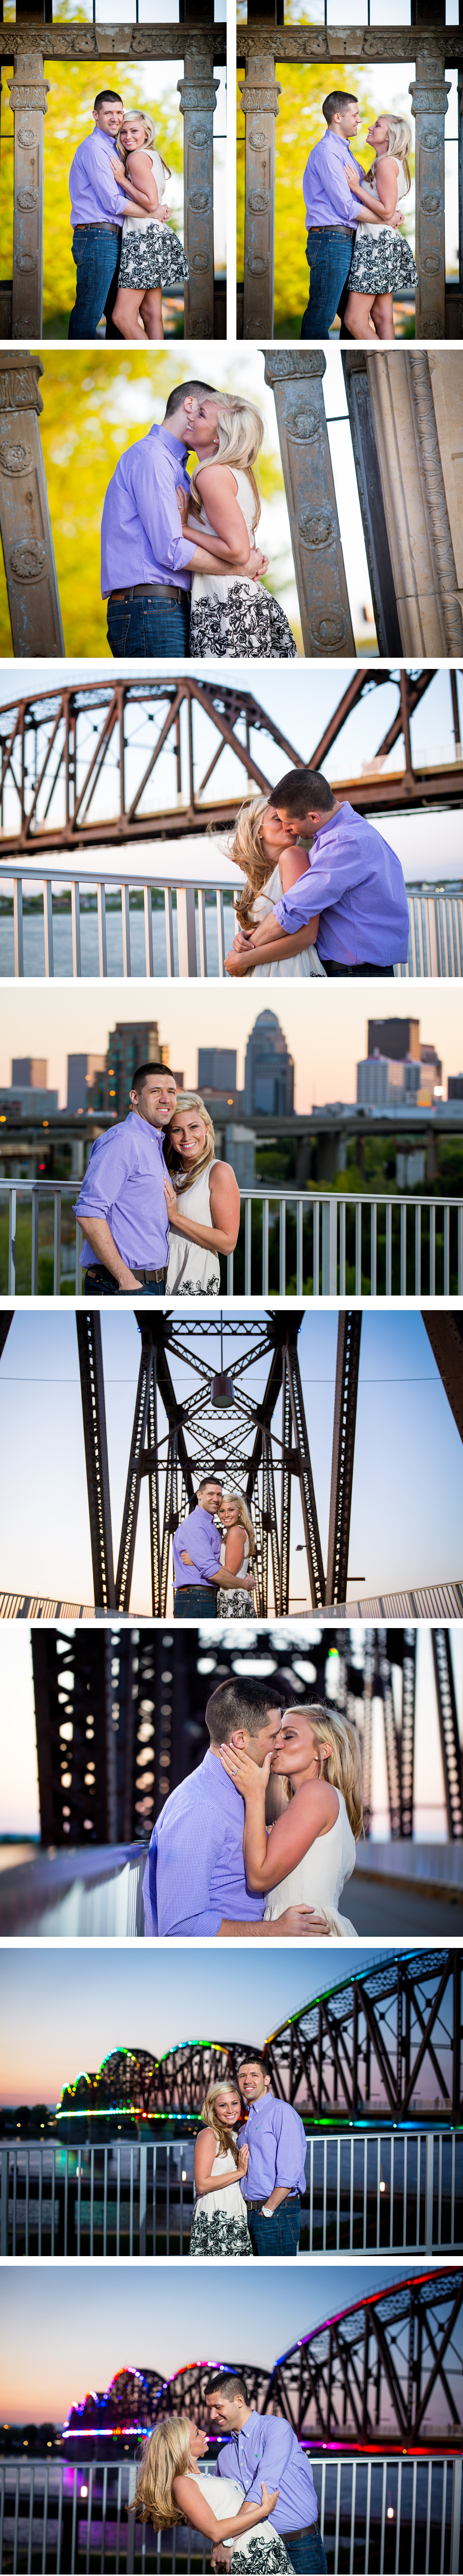 Downtown Louisville Engagement Photos eMotion image